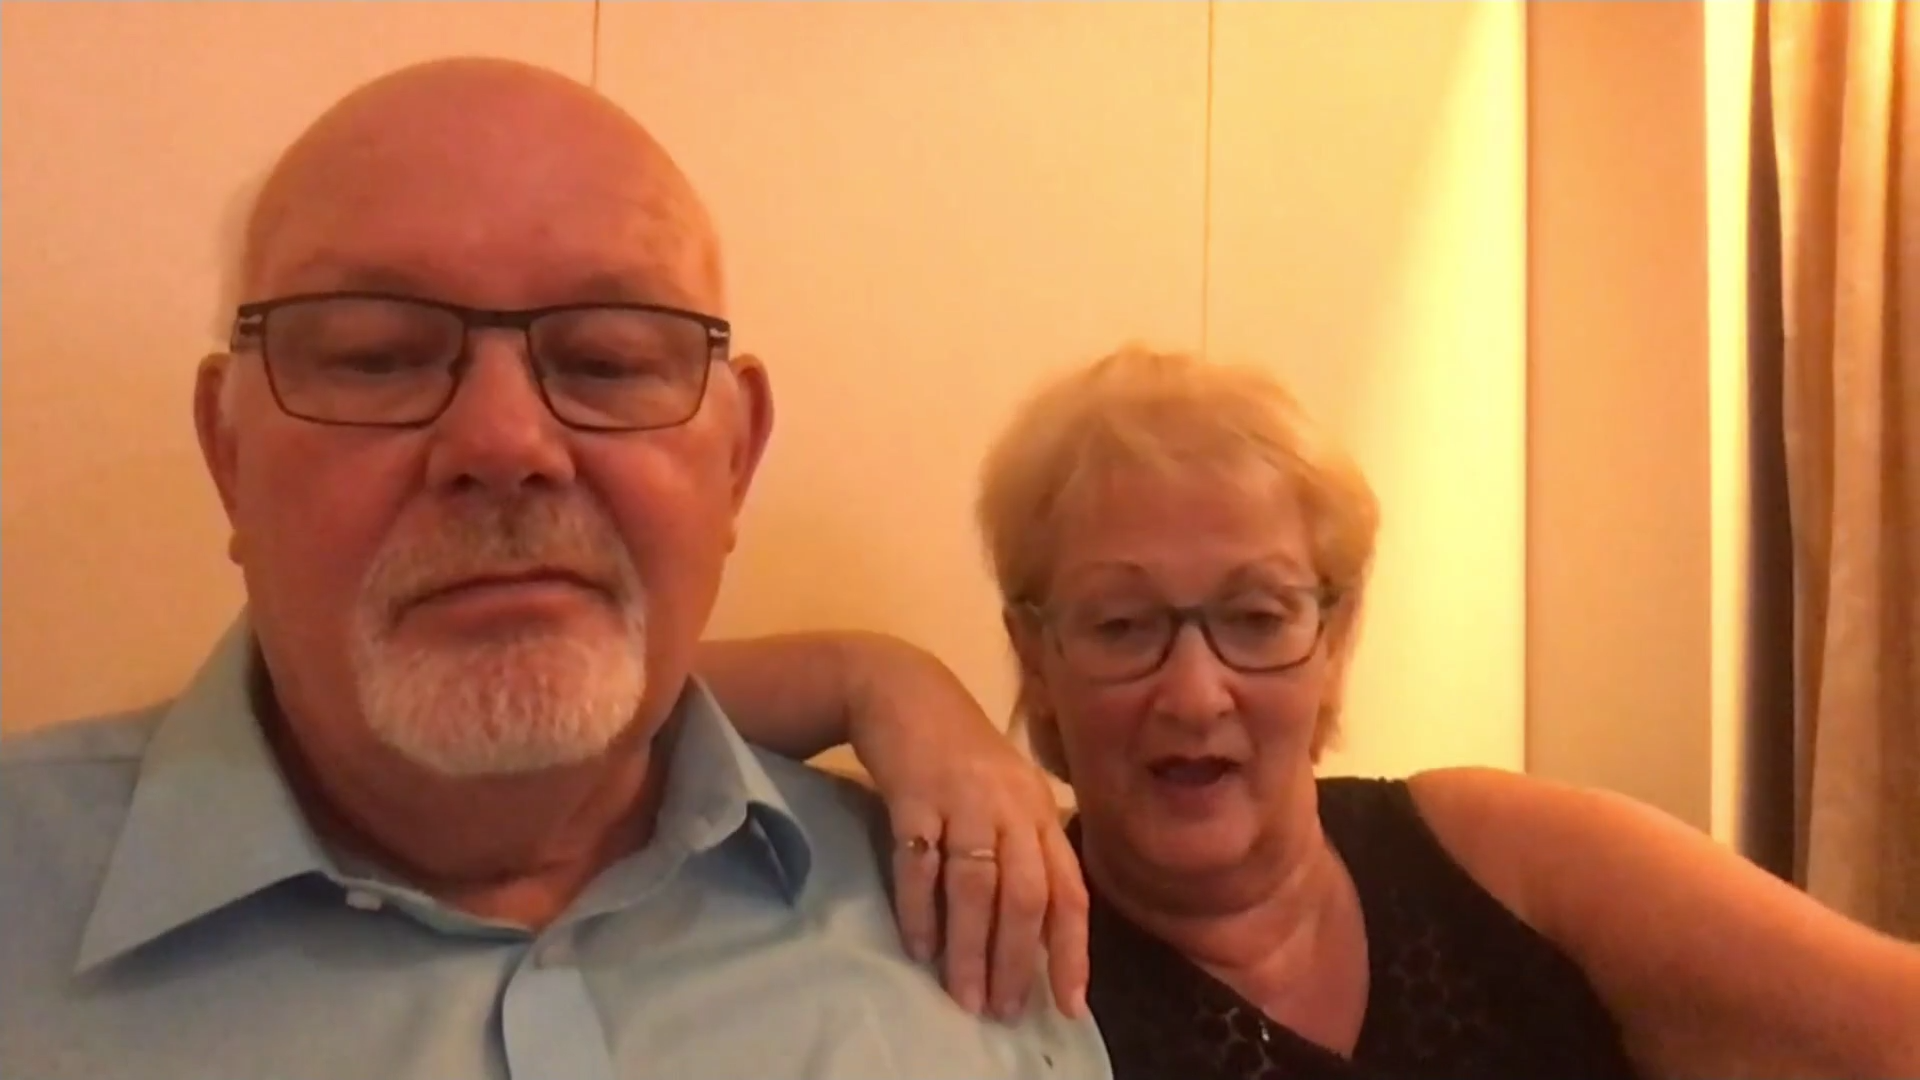 British couple on cruise ship 'may have coronavirus' - channel 4